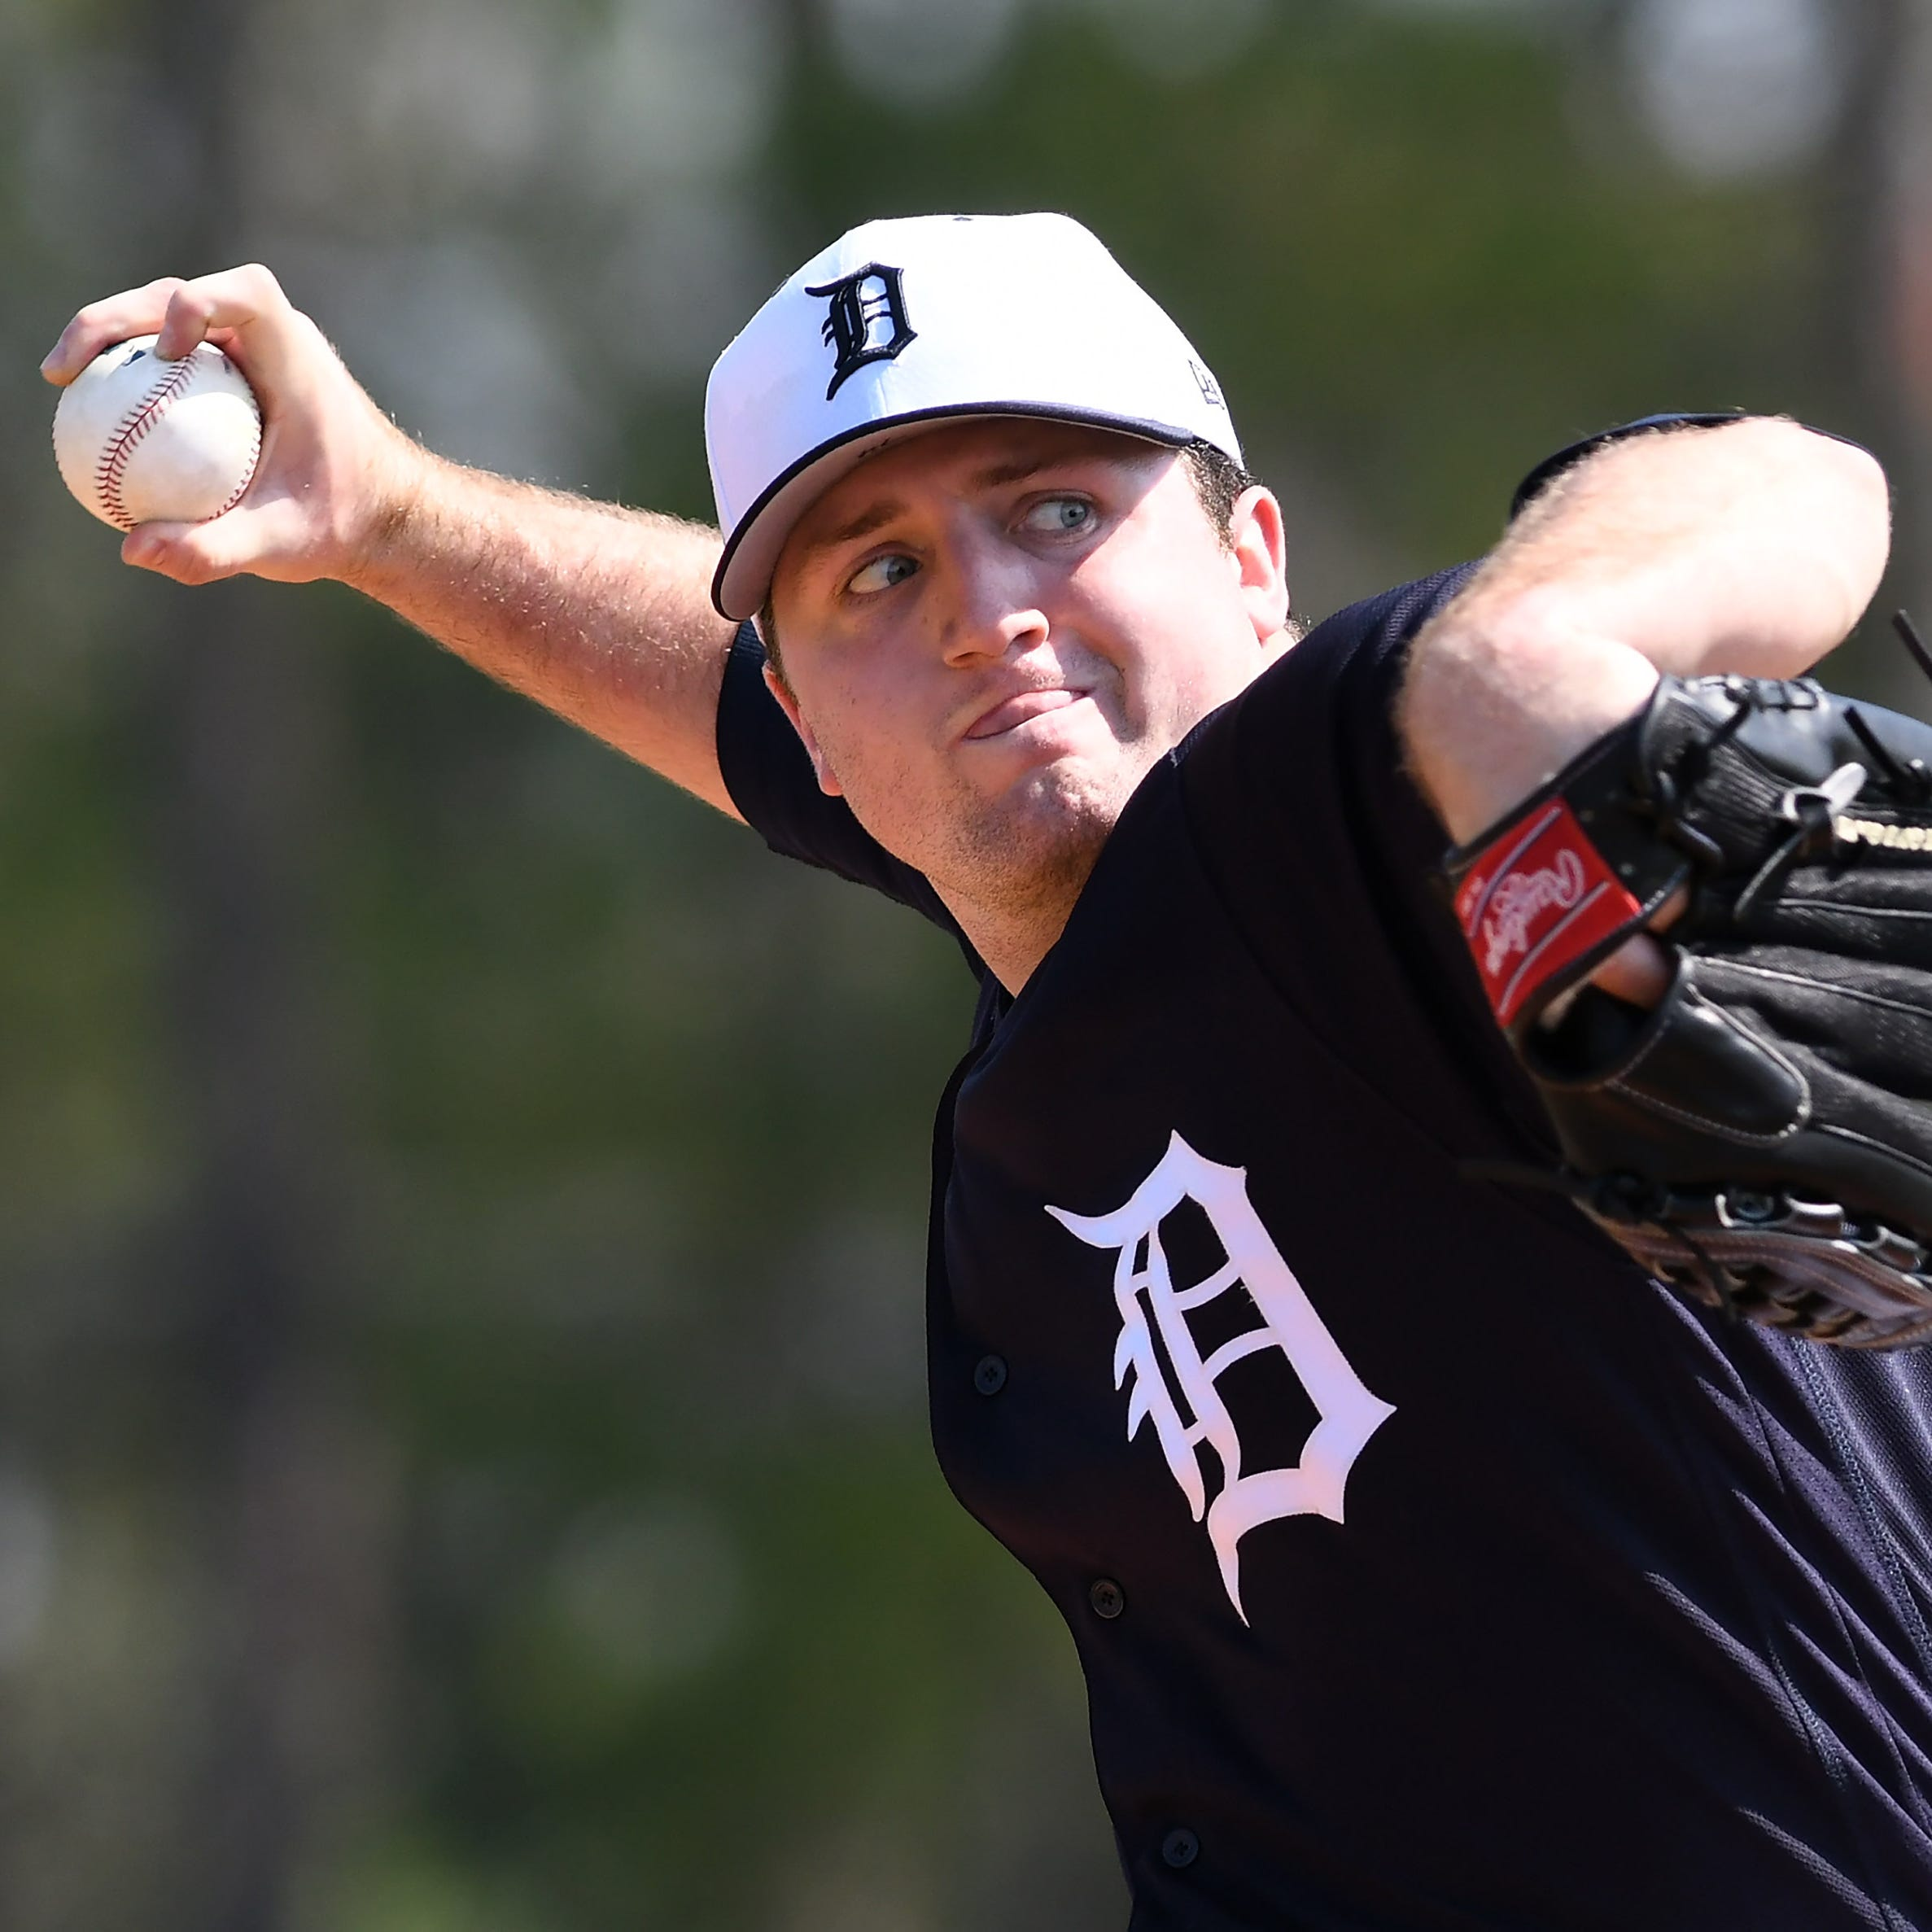 Movin' on up: Tigers' top prospect Casey Mize gets ticket to Erie